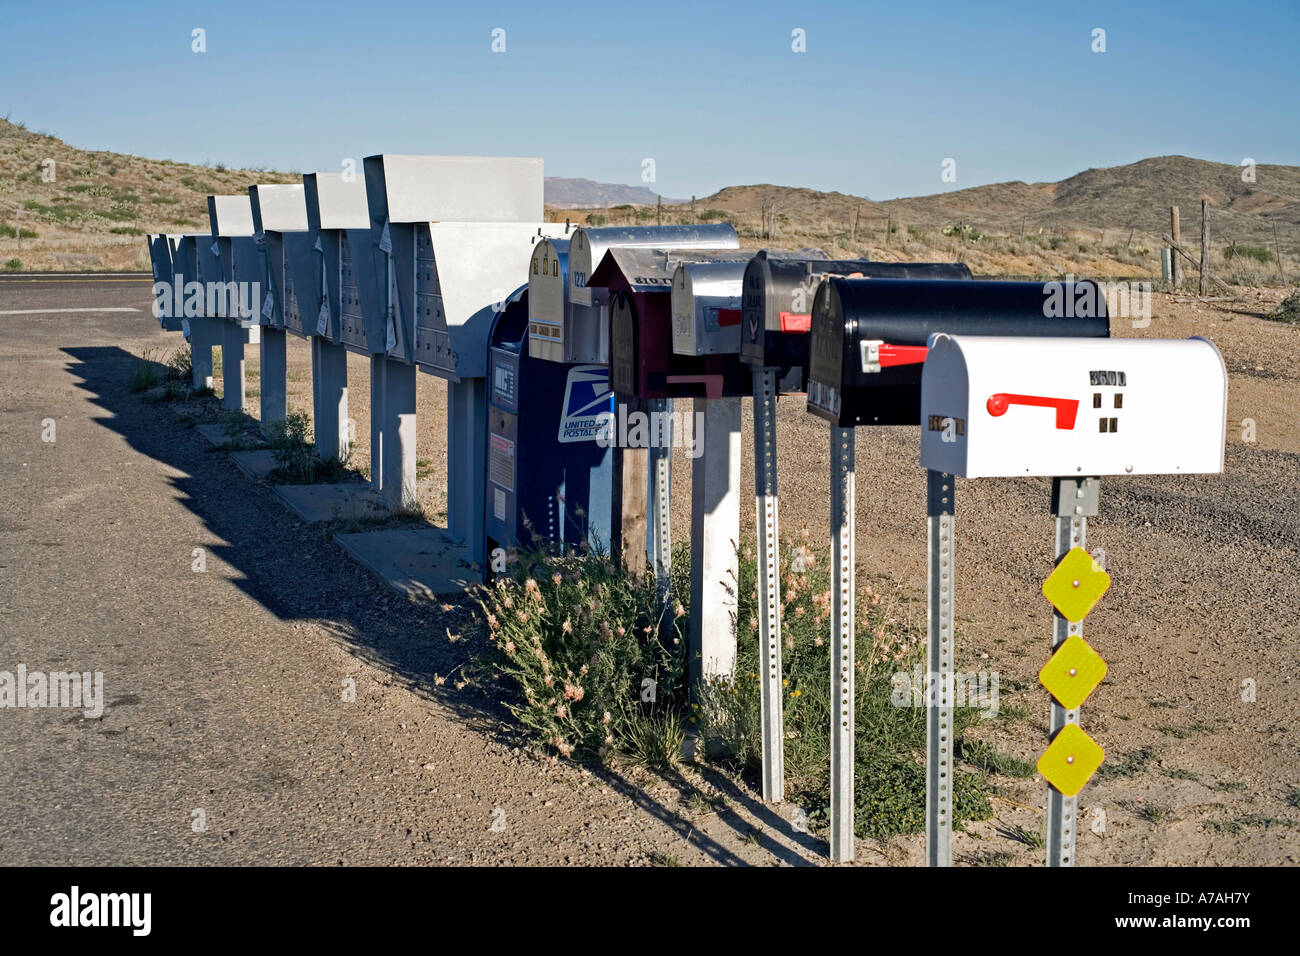 Row of mailboxes off a rural road in west Texas - Stock Image